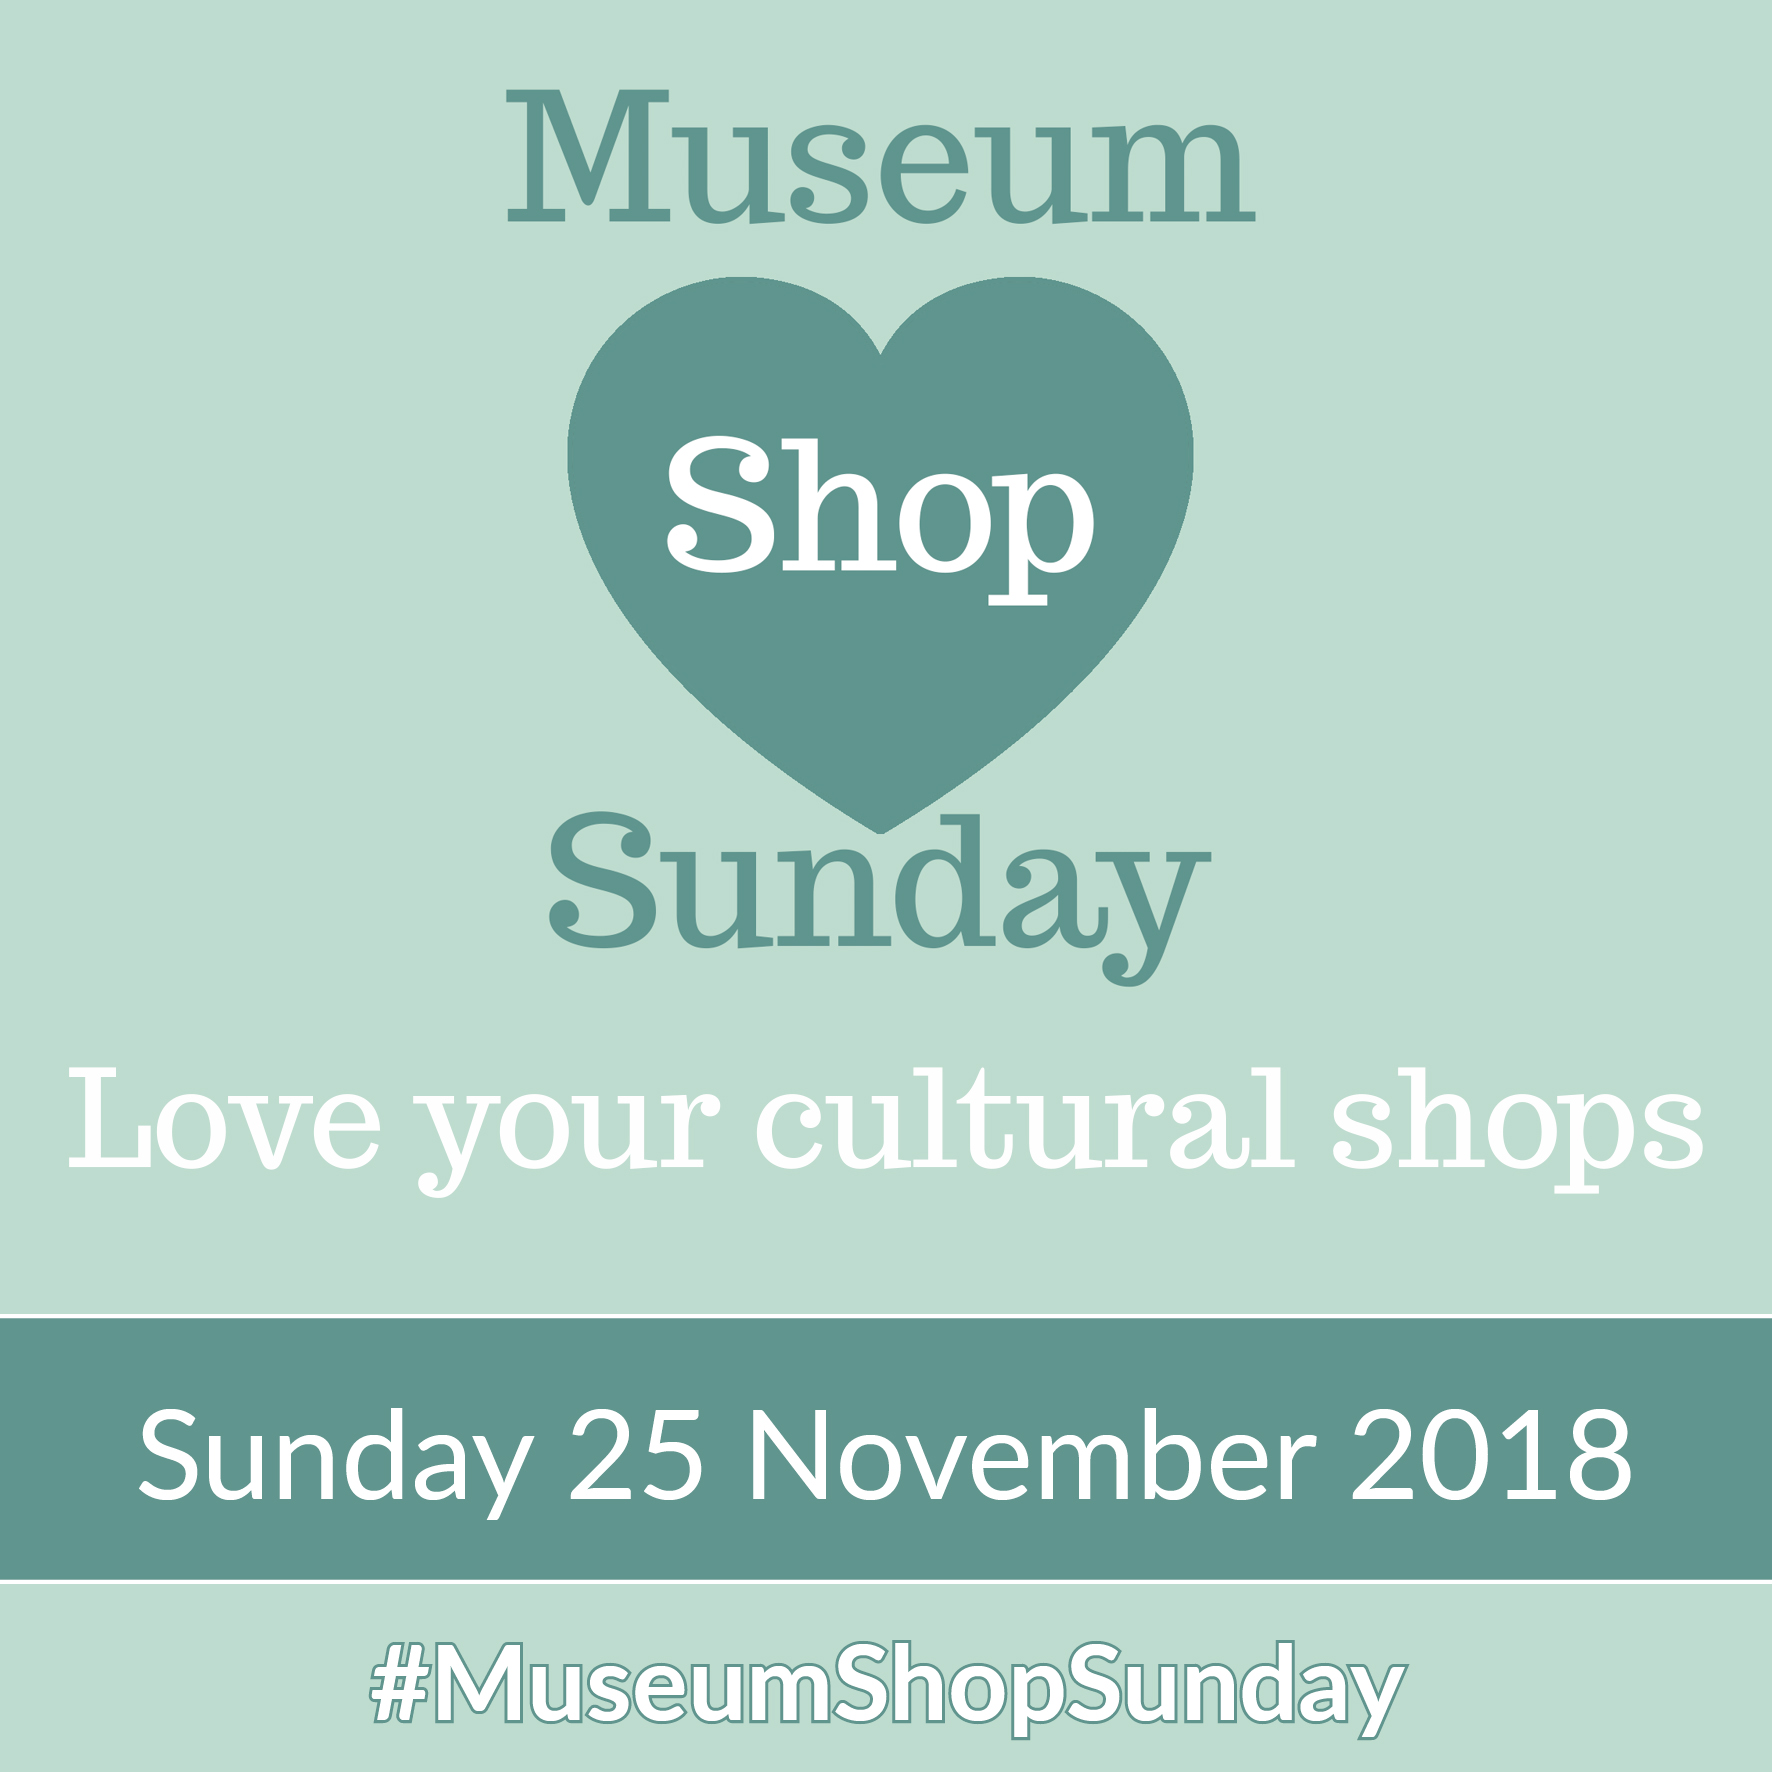 25 November is Museum Shop Sunday